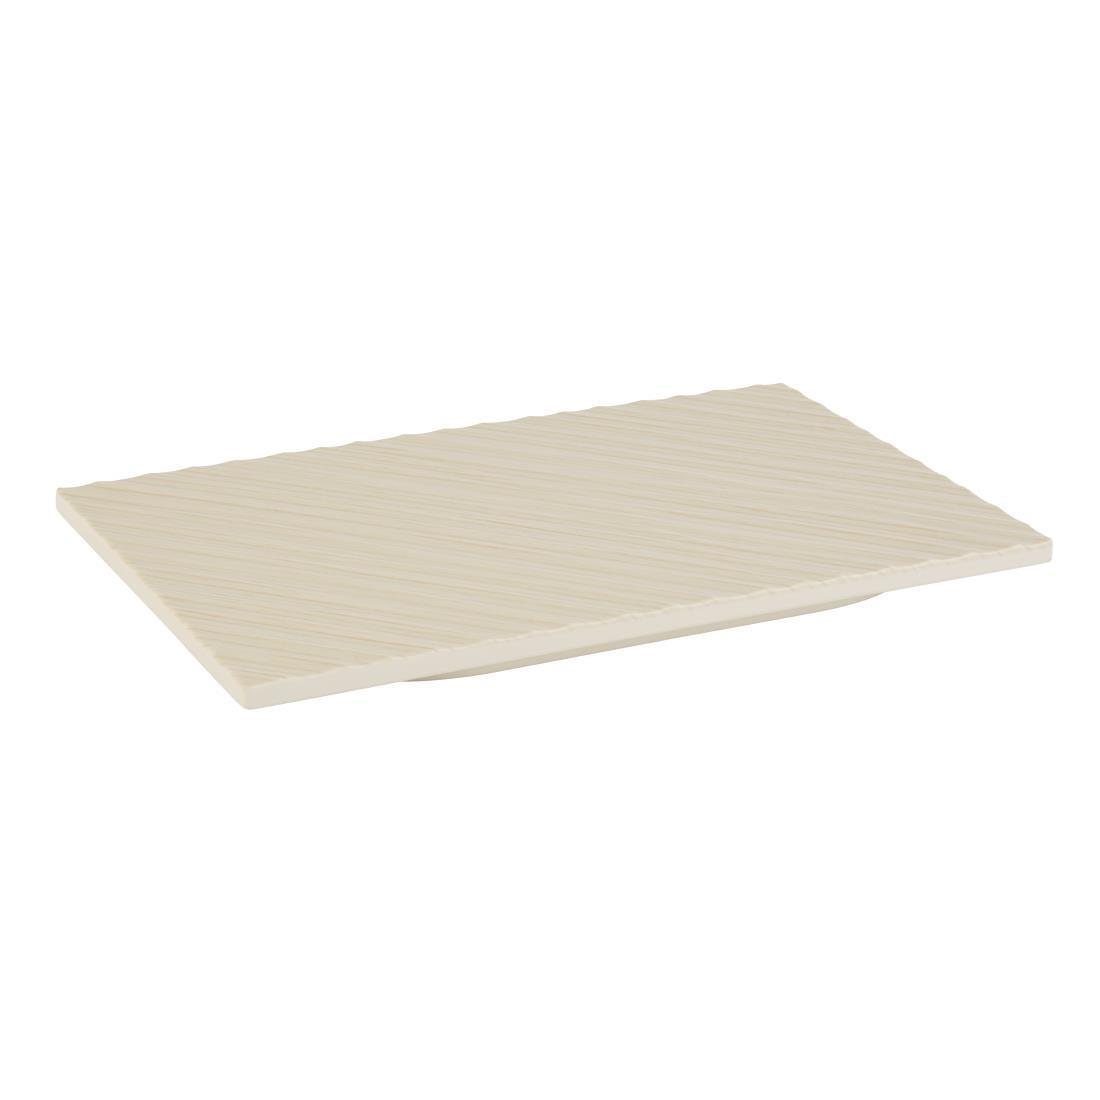 APS+ Tiles Tray Cream GN1/3 - Each - DT745